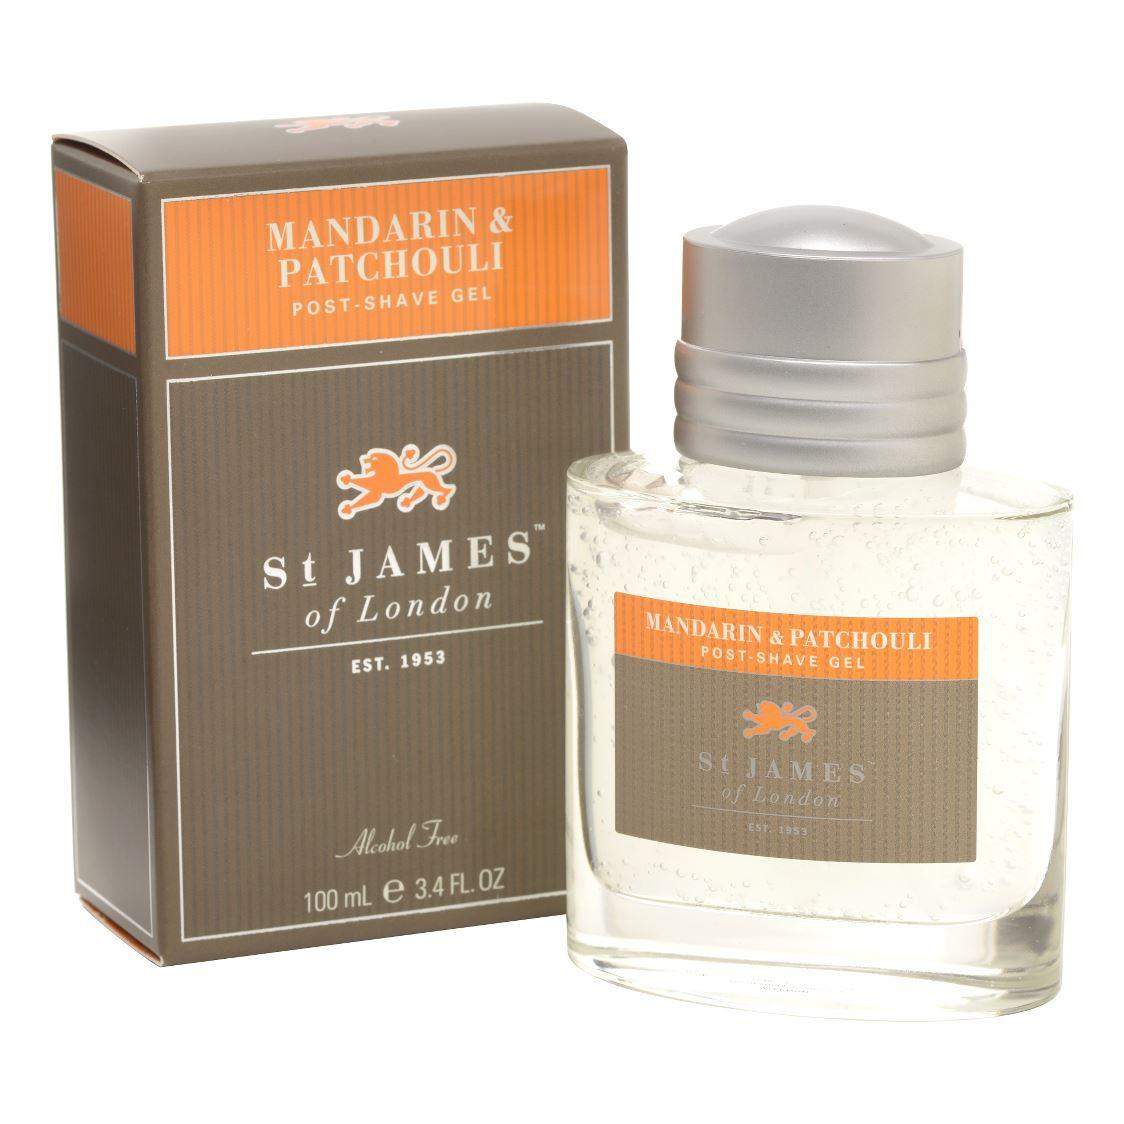 St James of London Mandarin & Patchouli Large Post Shave Gel